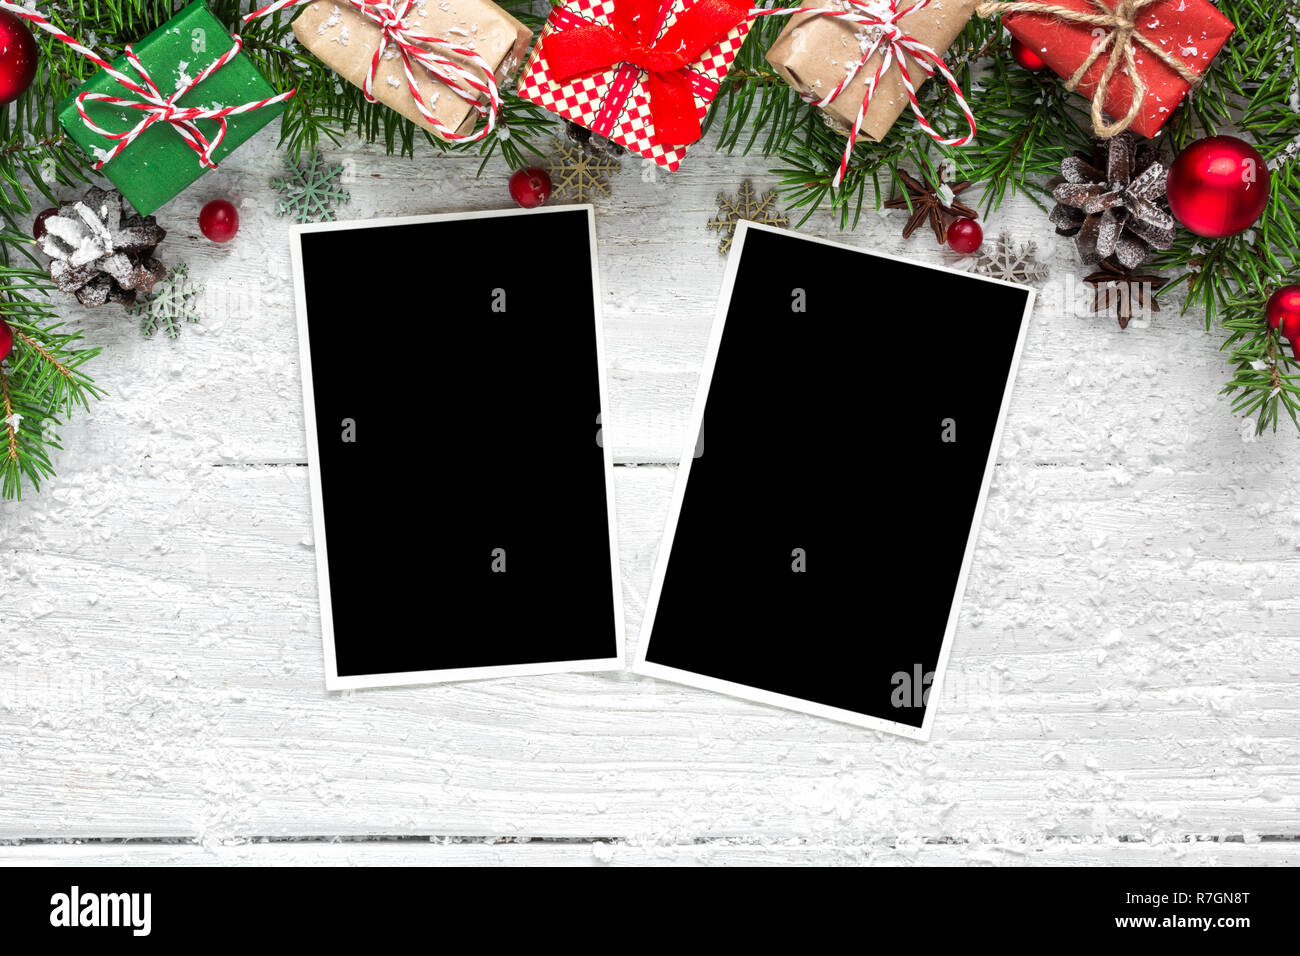 Christmas Blank Photo Frames With Fir Tree Branches Decorations And